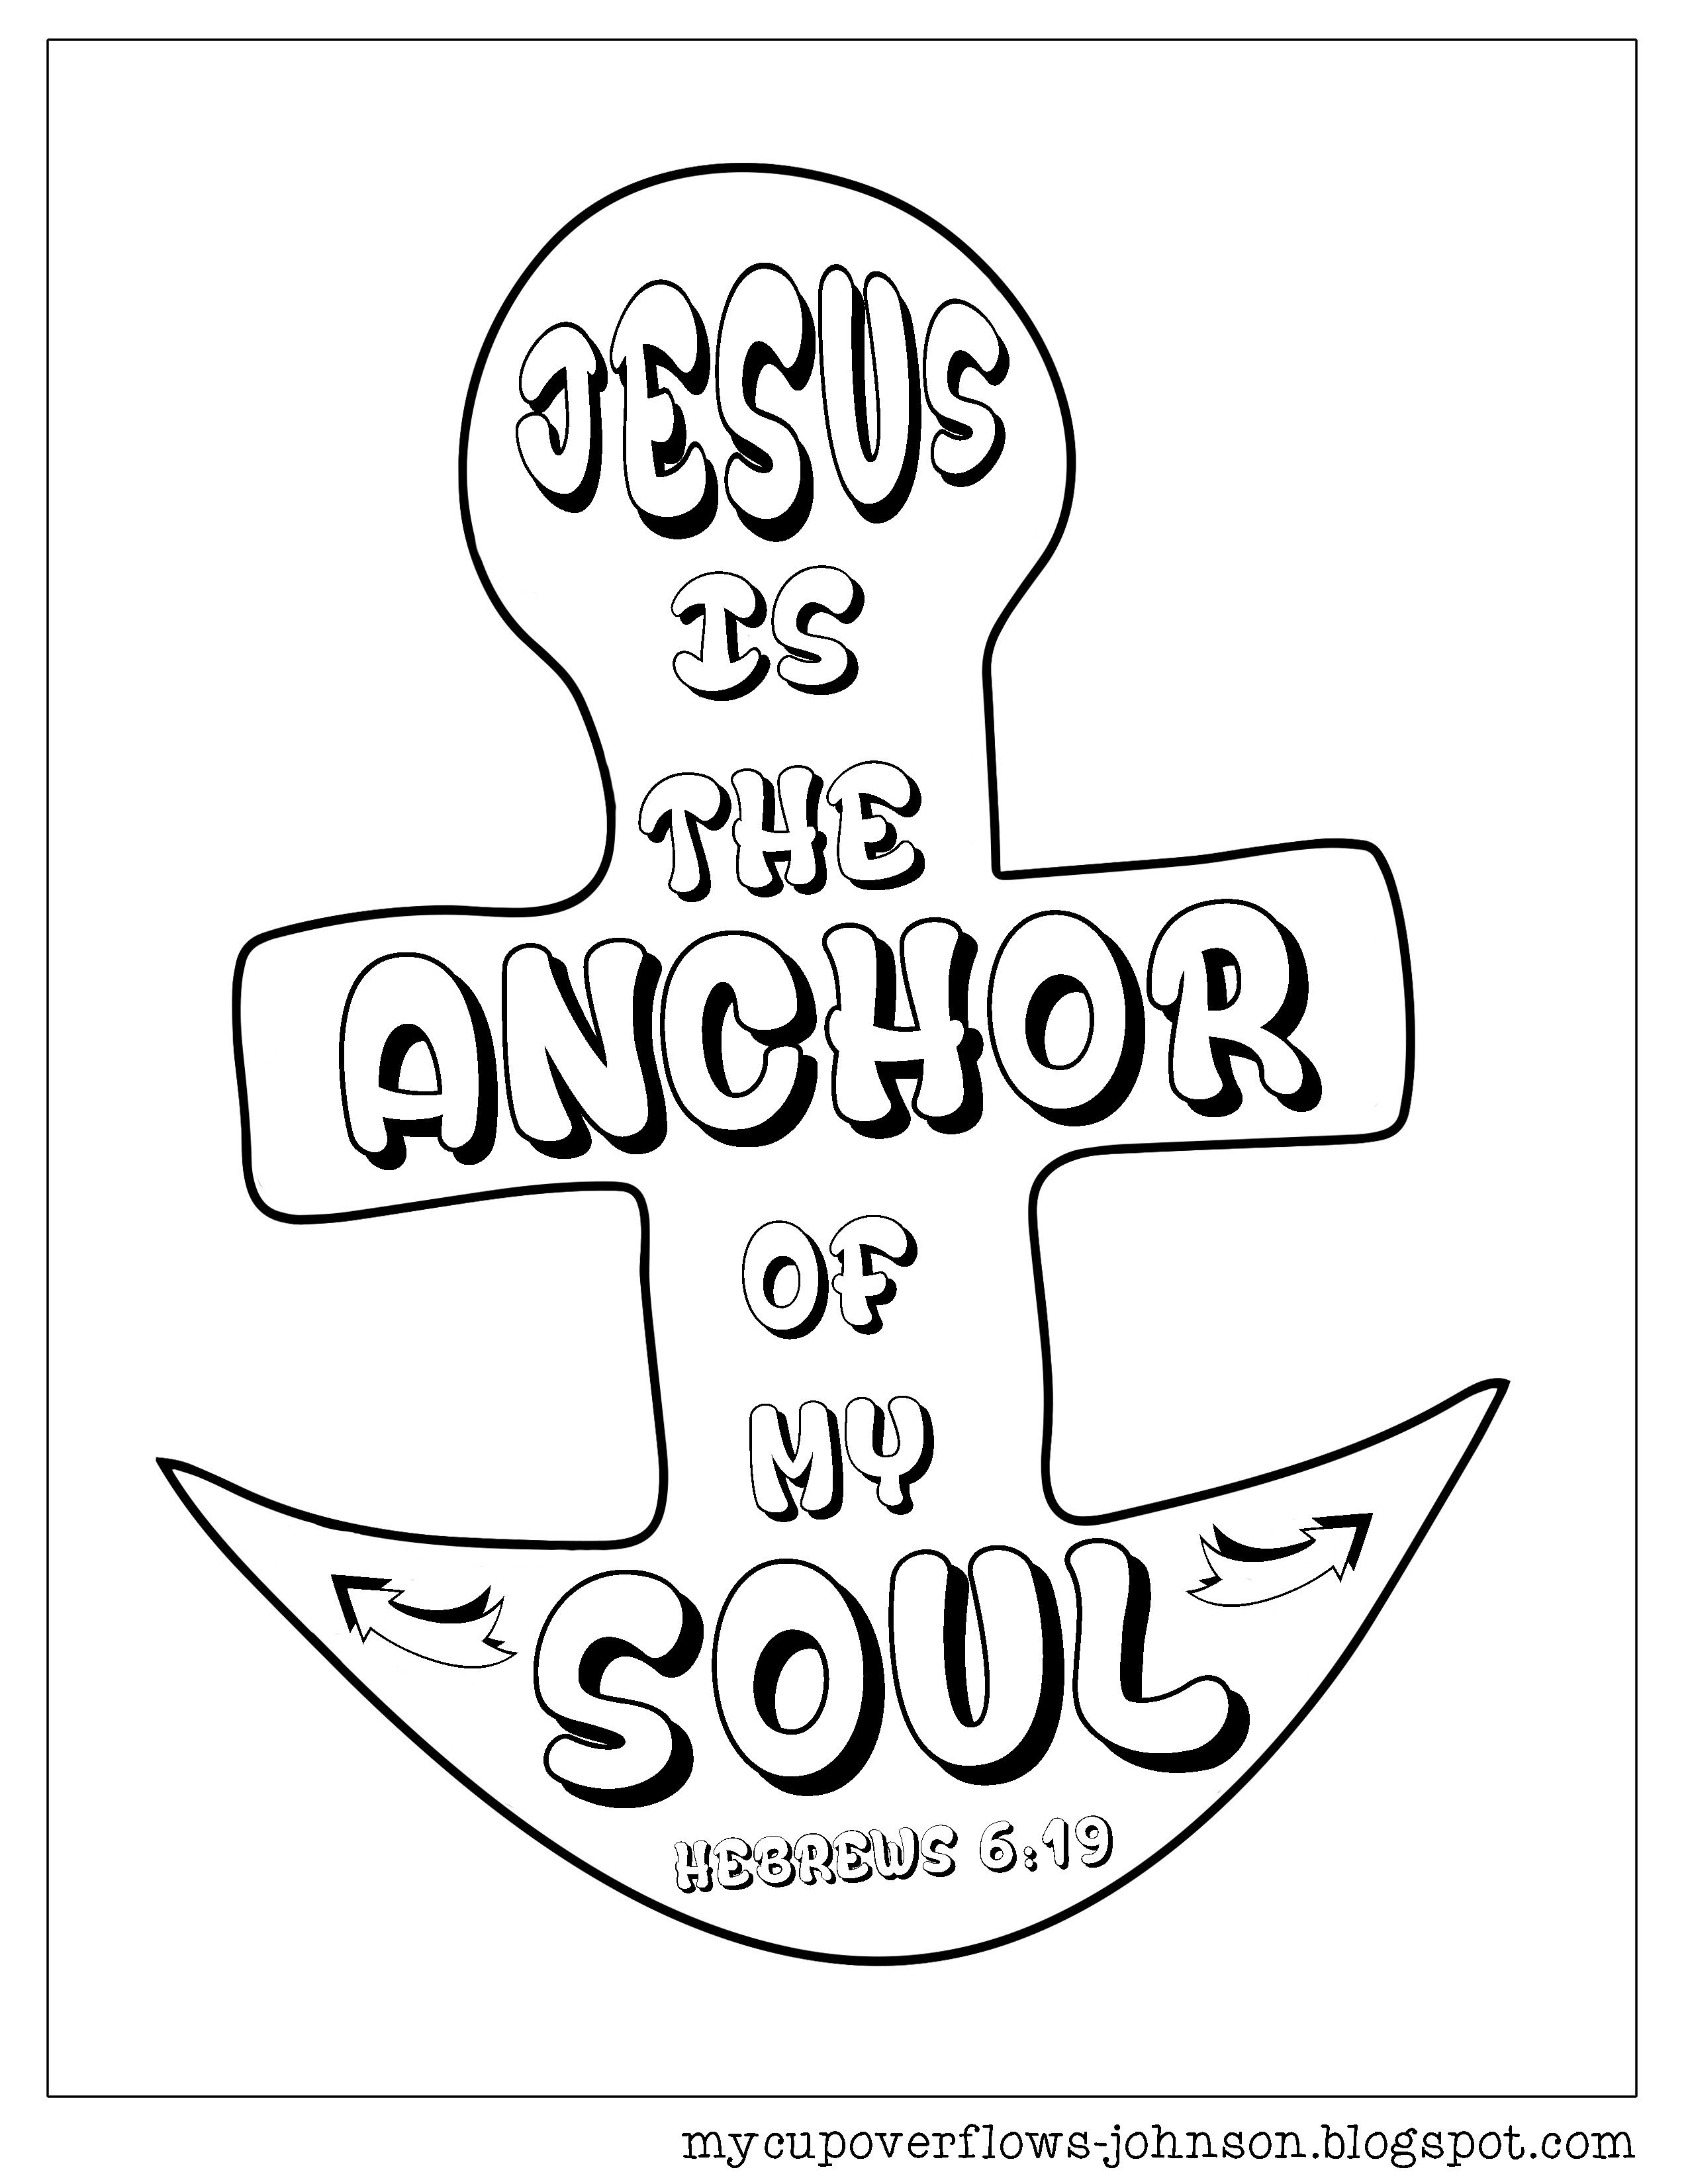 Pin By Lori Moore On Shipwrecked Vbs T Tropical